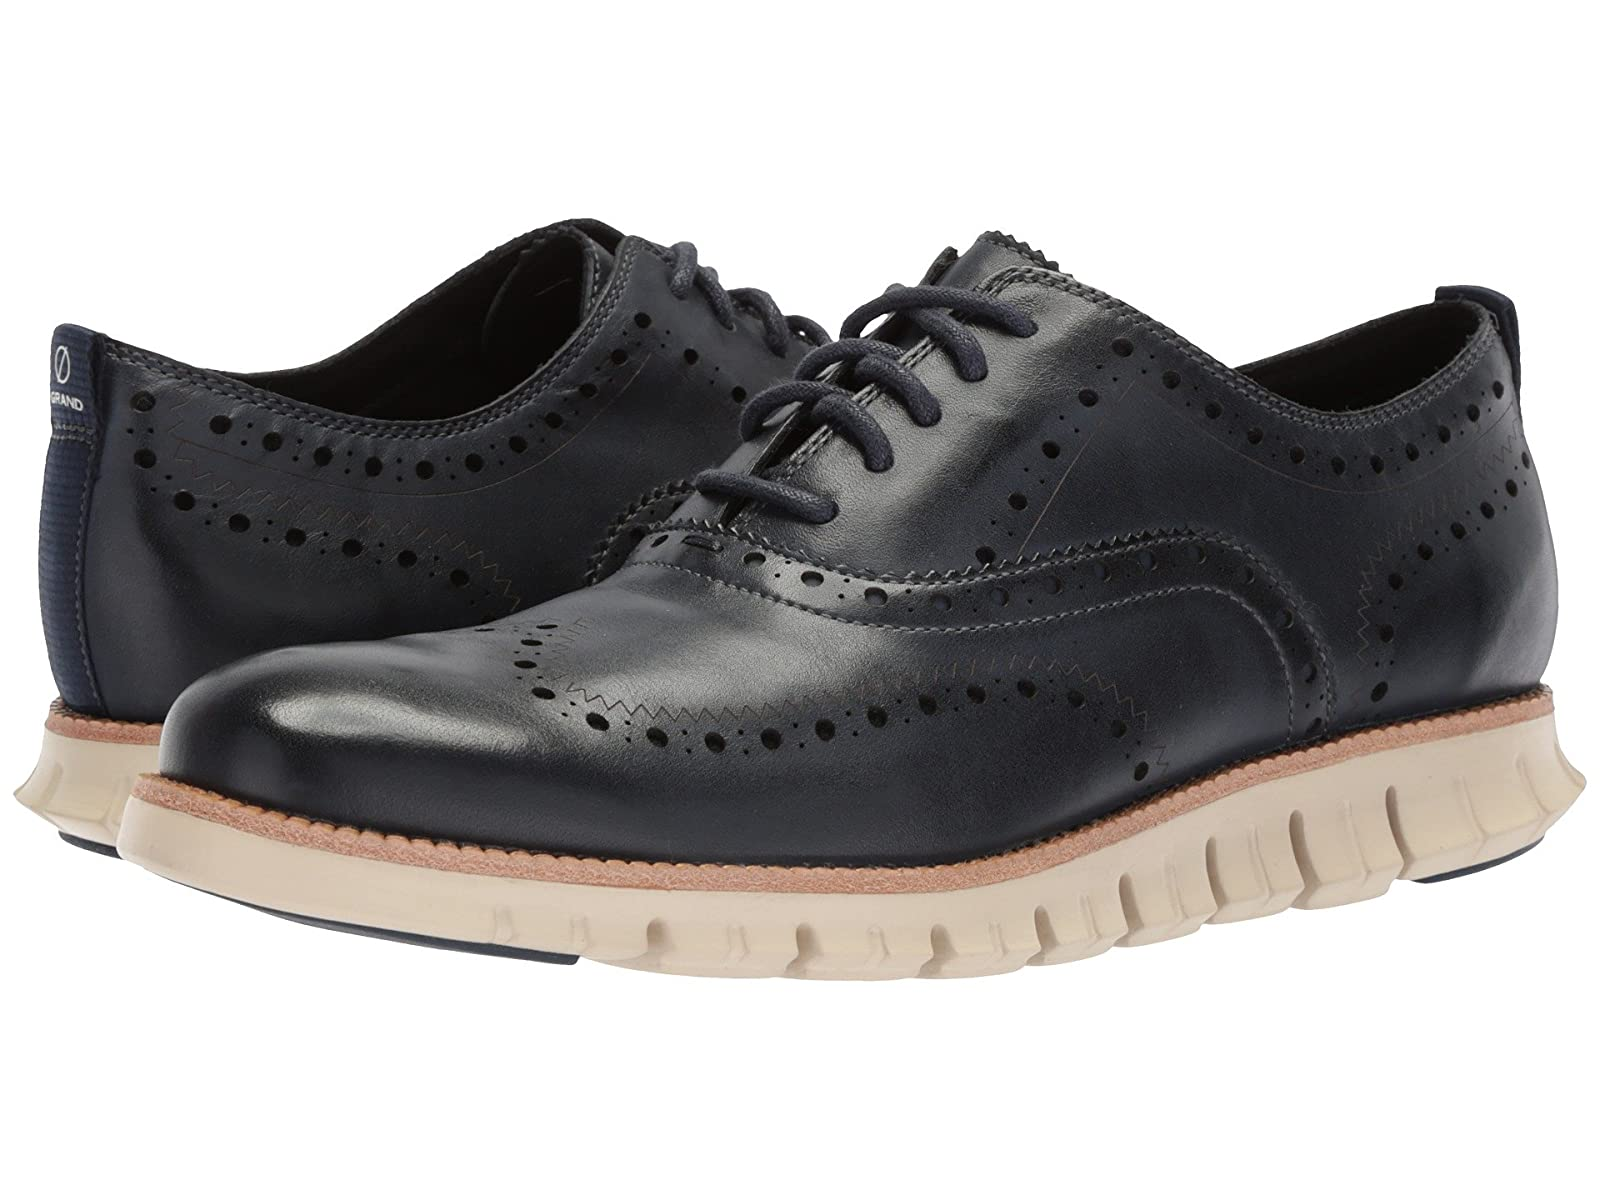 Cole Haan ZeroGrand Wingtip Oxford IICheap and distinctive eye-catching shoes